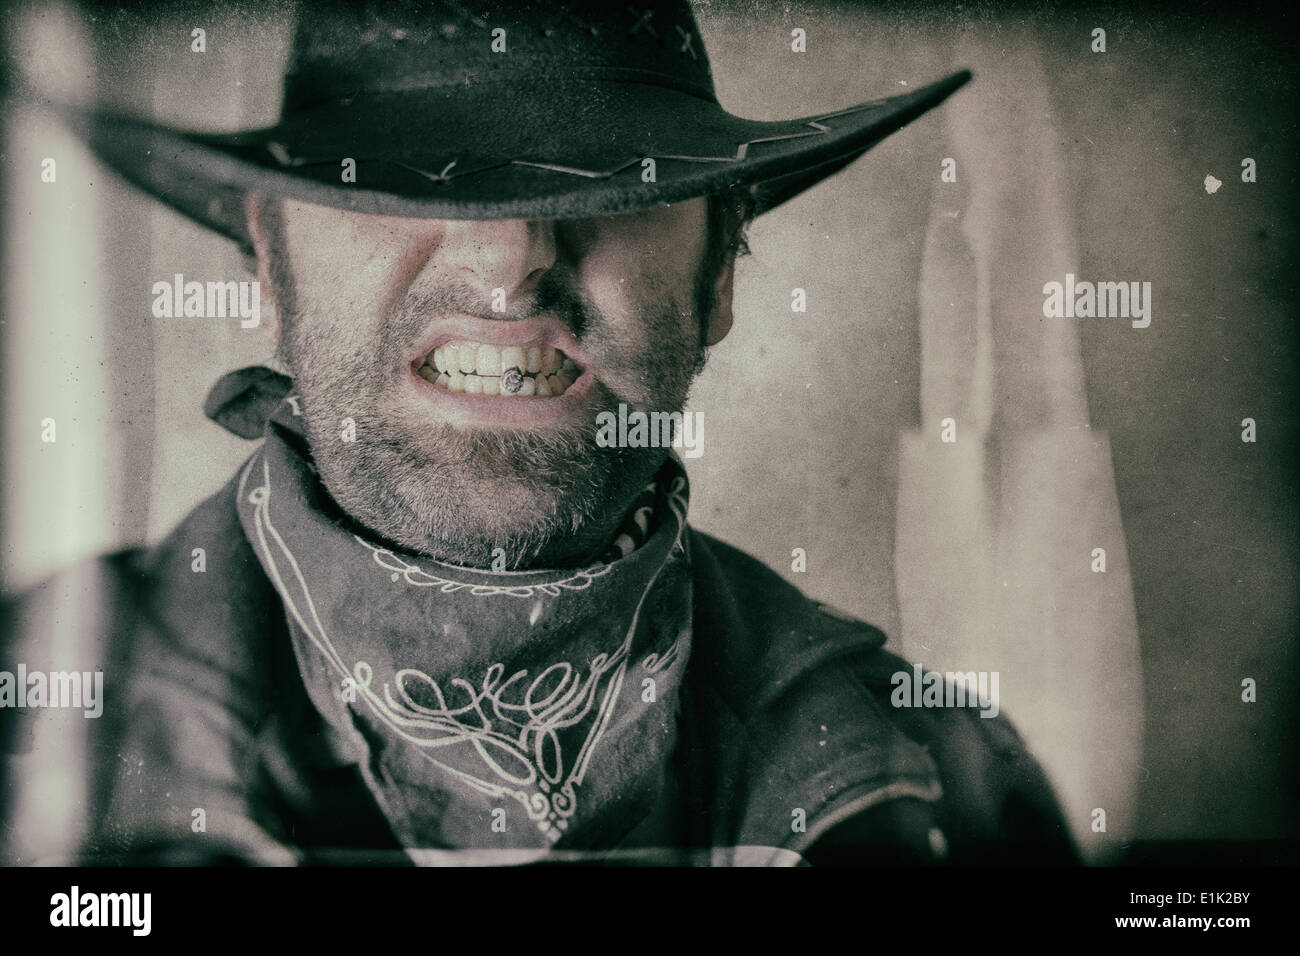 Old West Cowboy Smoker Gritting Teeth - Stock Image